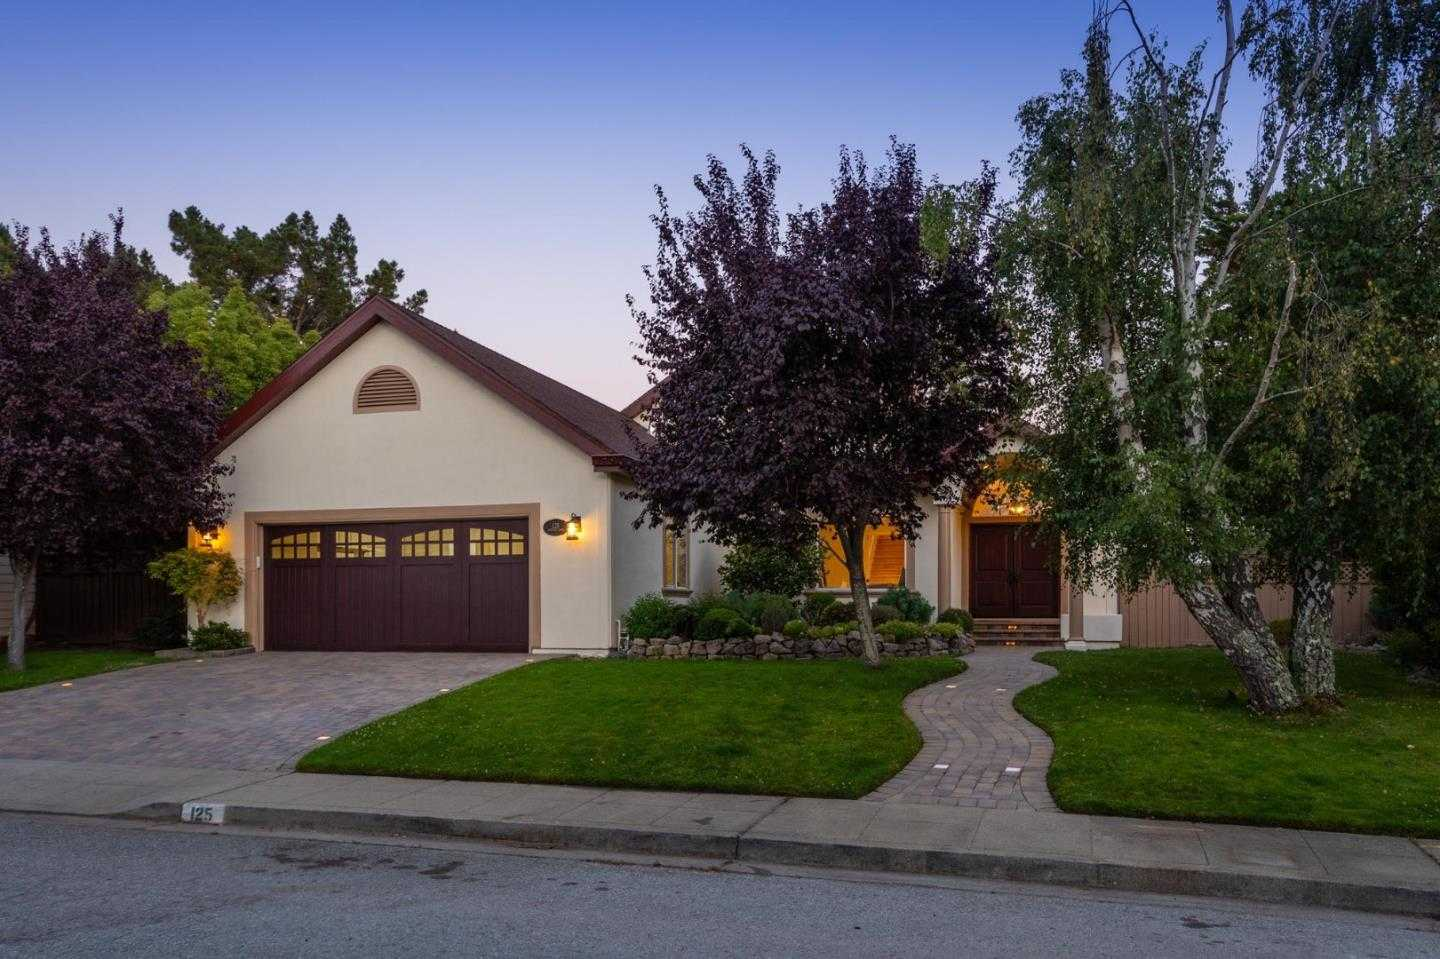 $2,598,000 - 3Br/3Ba -  for Sale in San Carlos